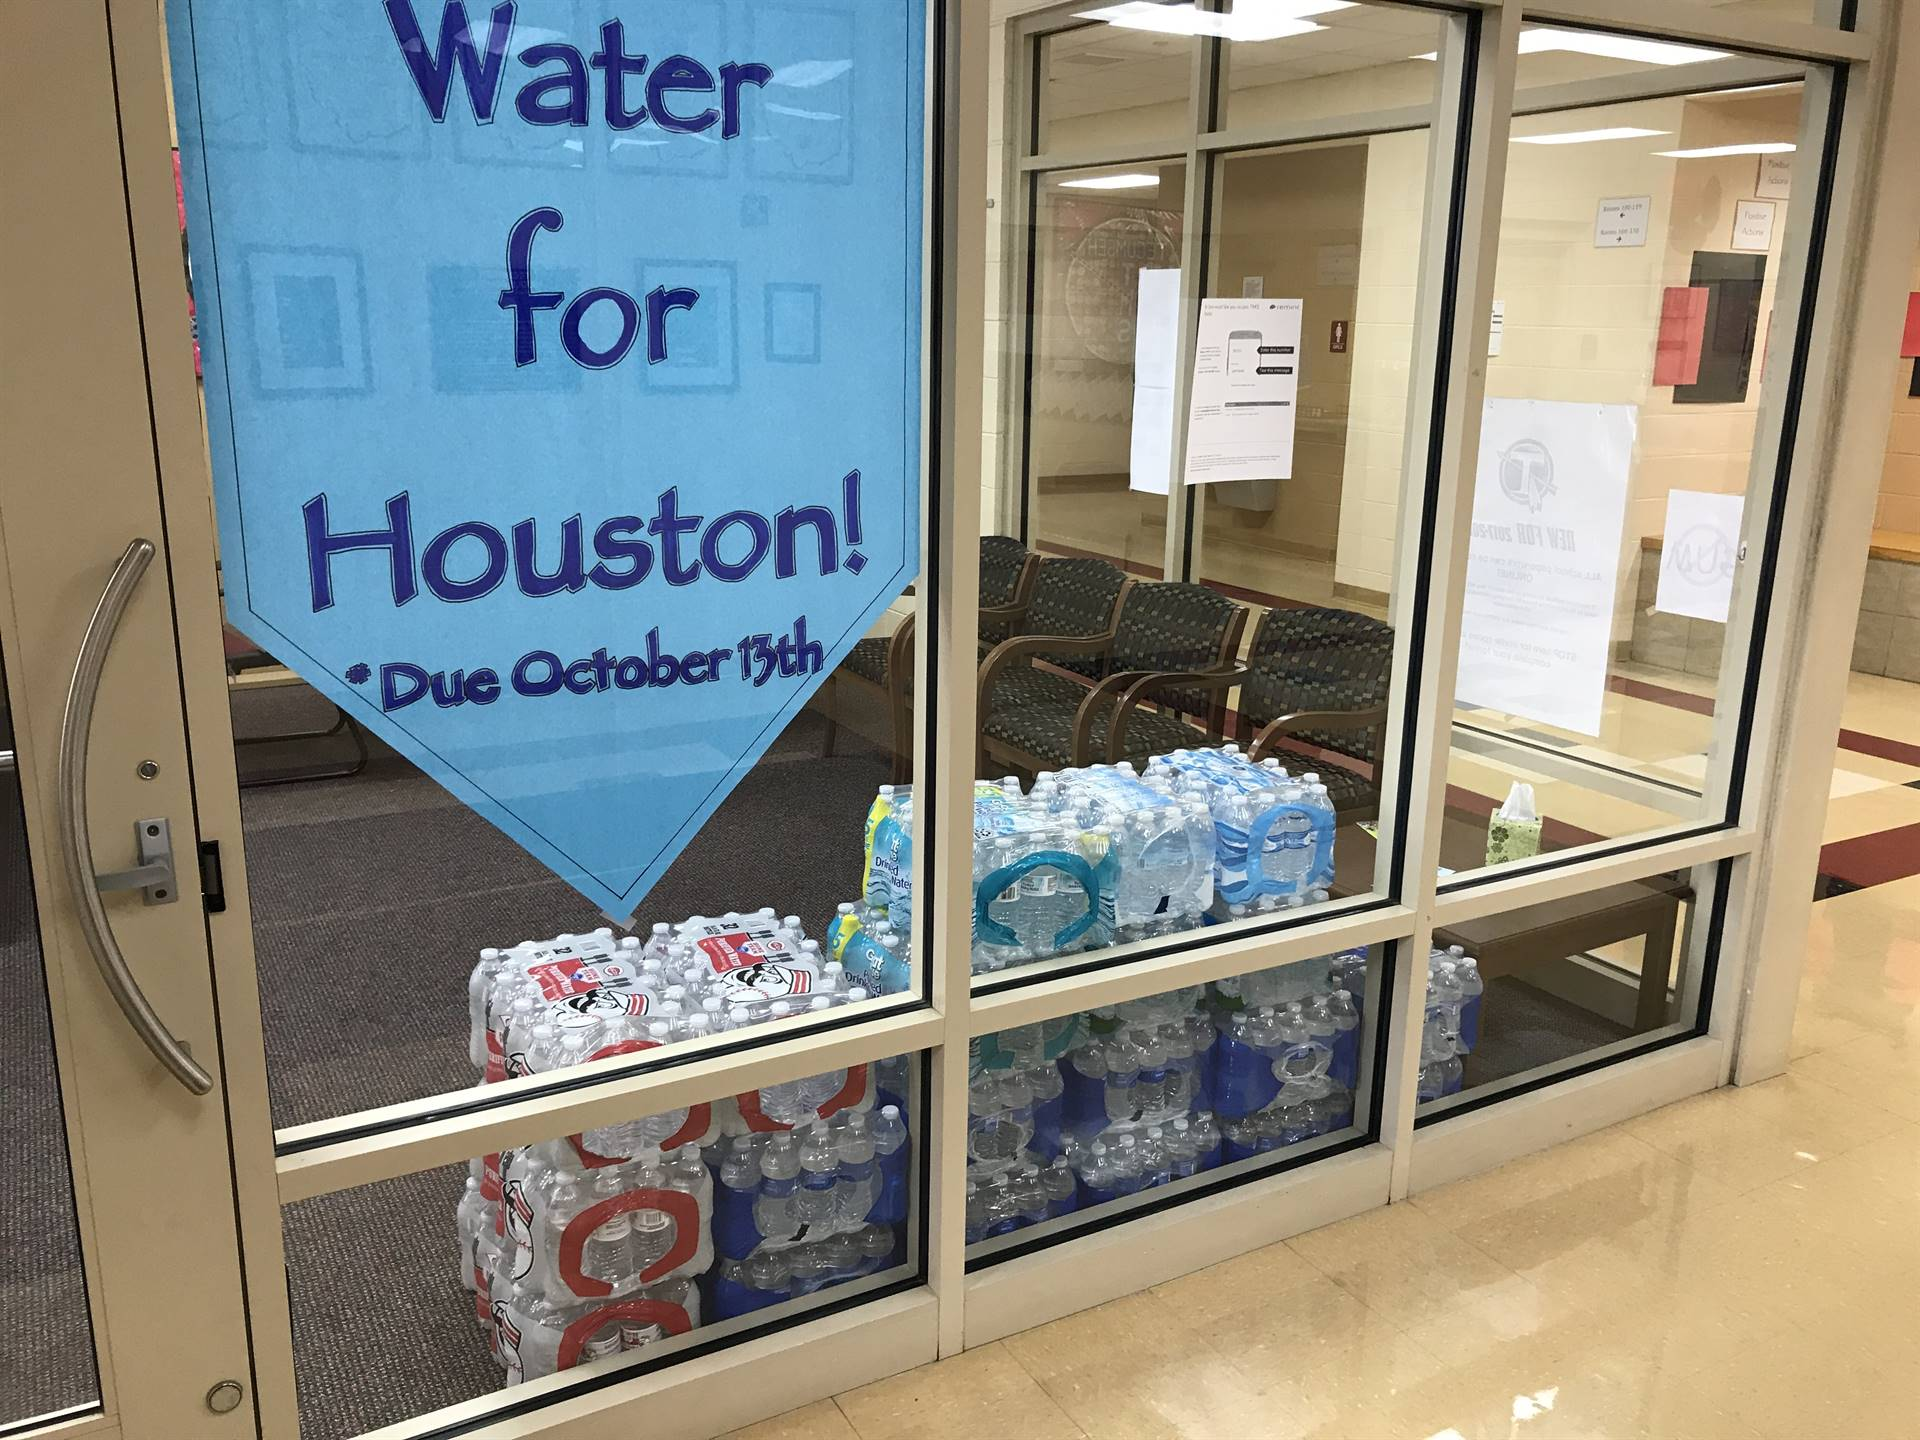 Water for Houston